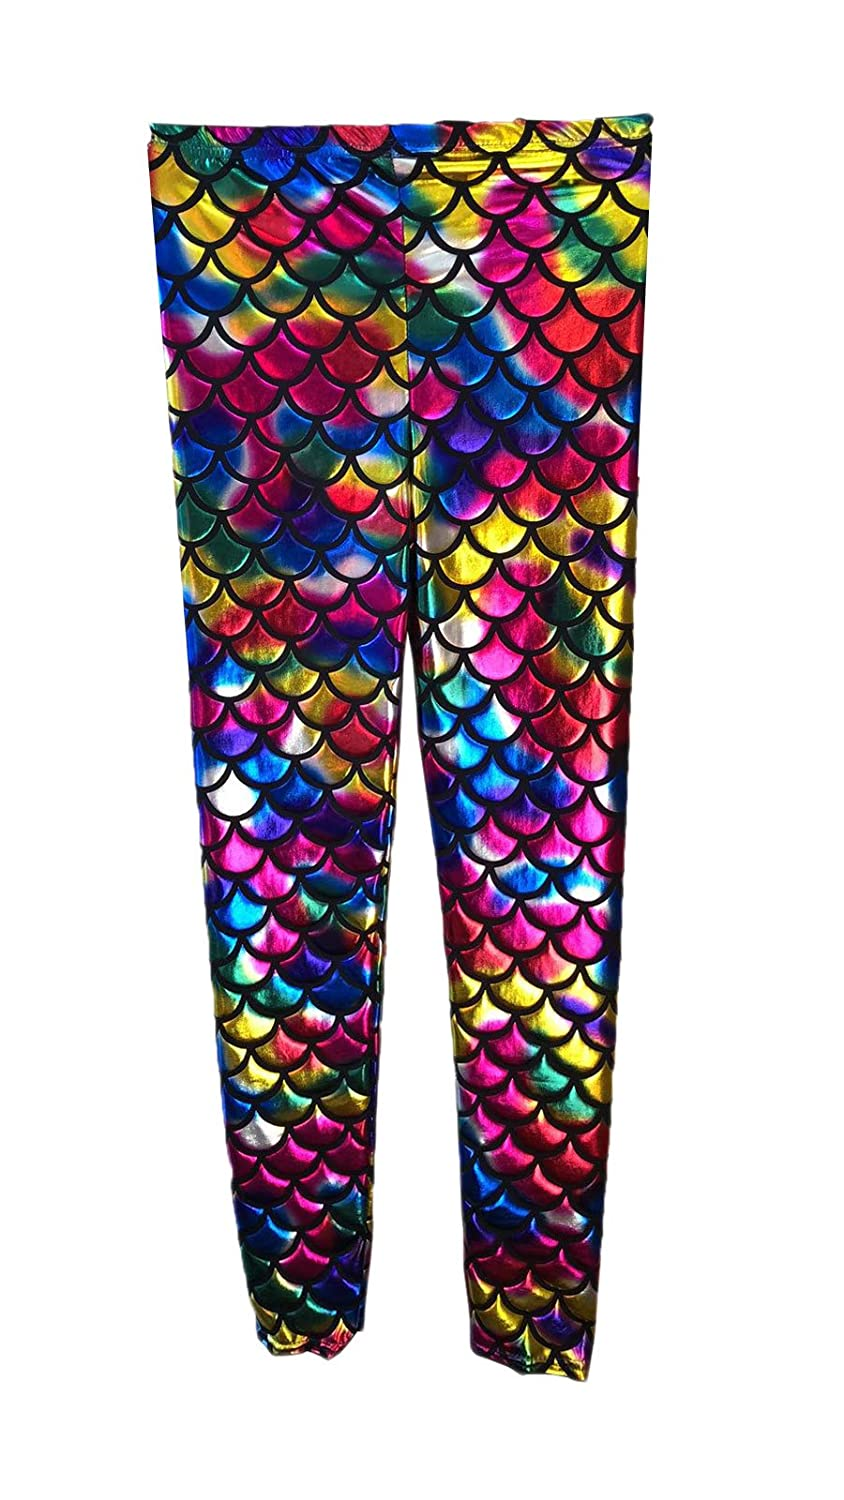 Crazy Chick® New Girl's Kids Mermaid Rainbow Fish Scale Holographic Slim Fit Shiny Disco Metallic Leggings Pants Age 5-13 Years